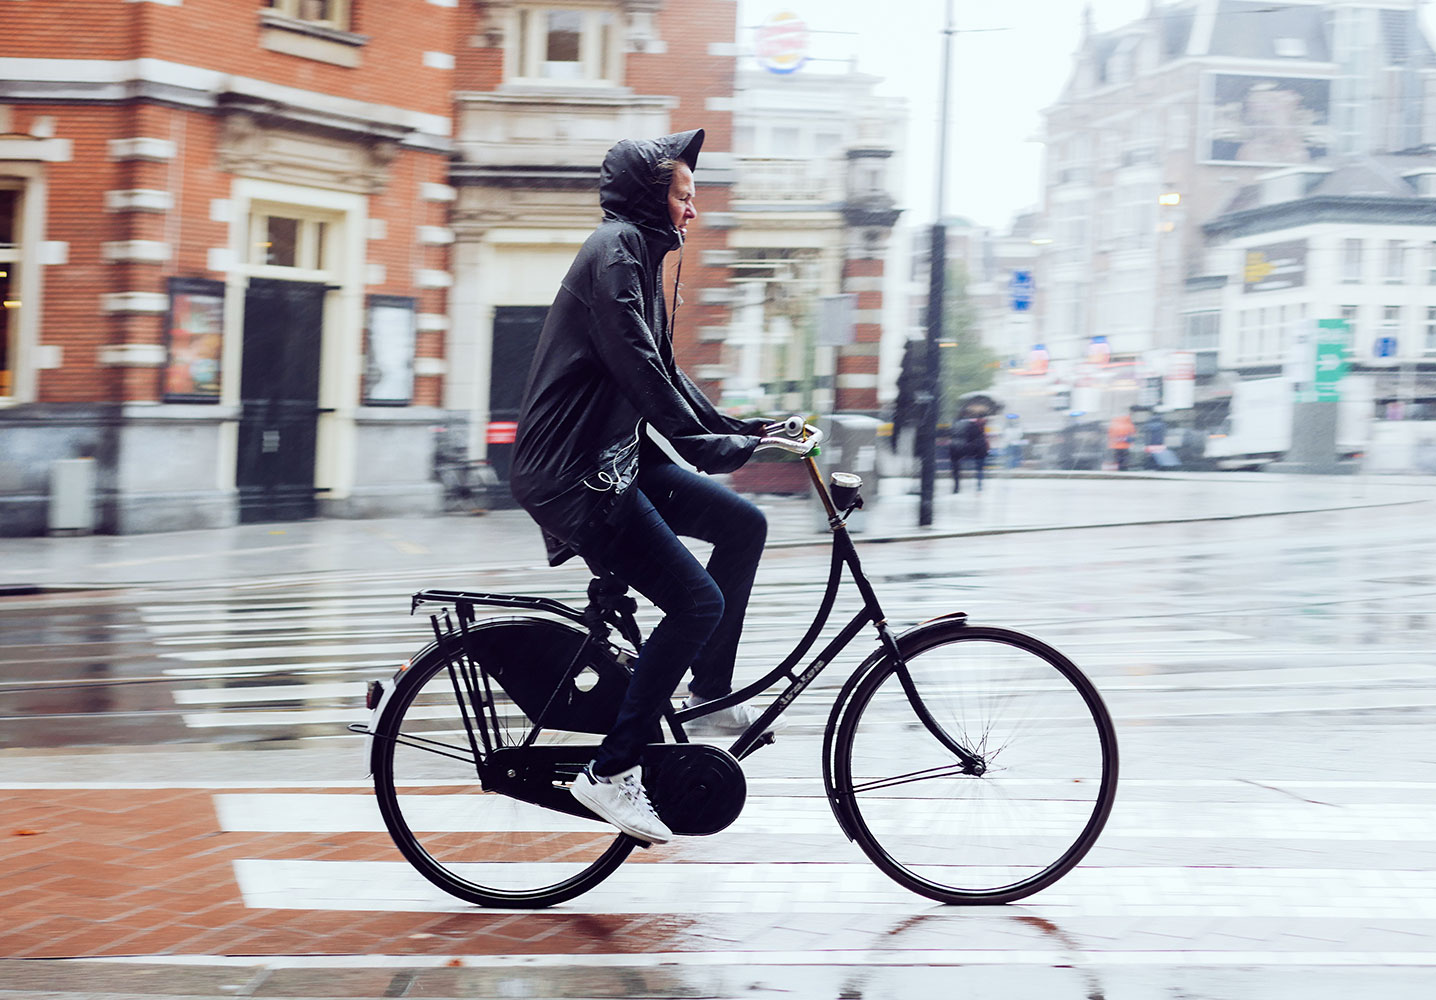 The Top Ten Bicycles of Amsterdam - Rolling Spoke